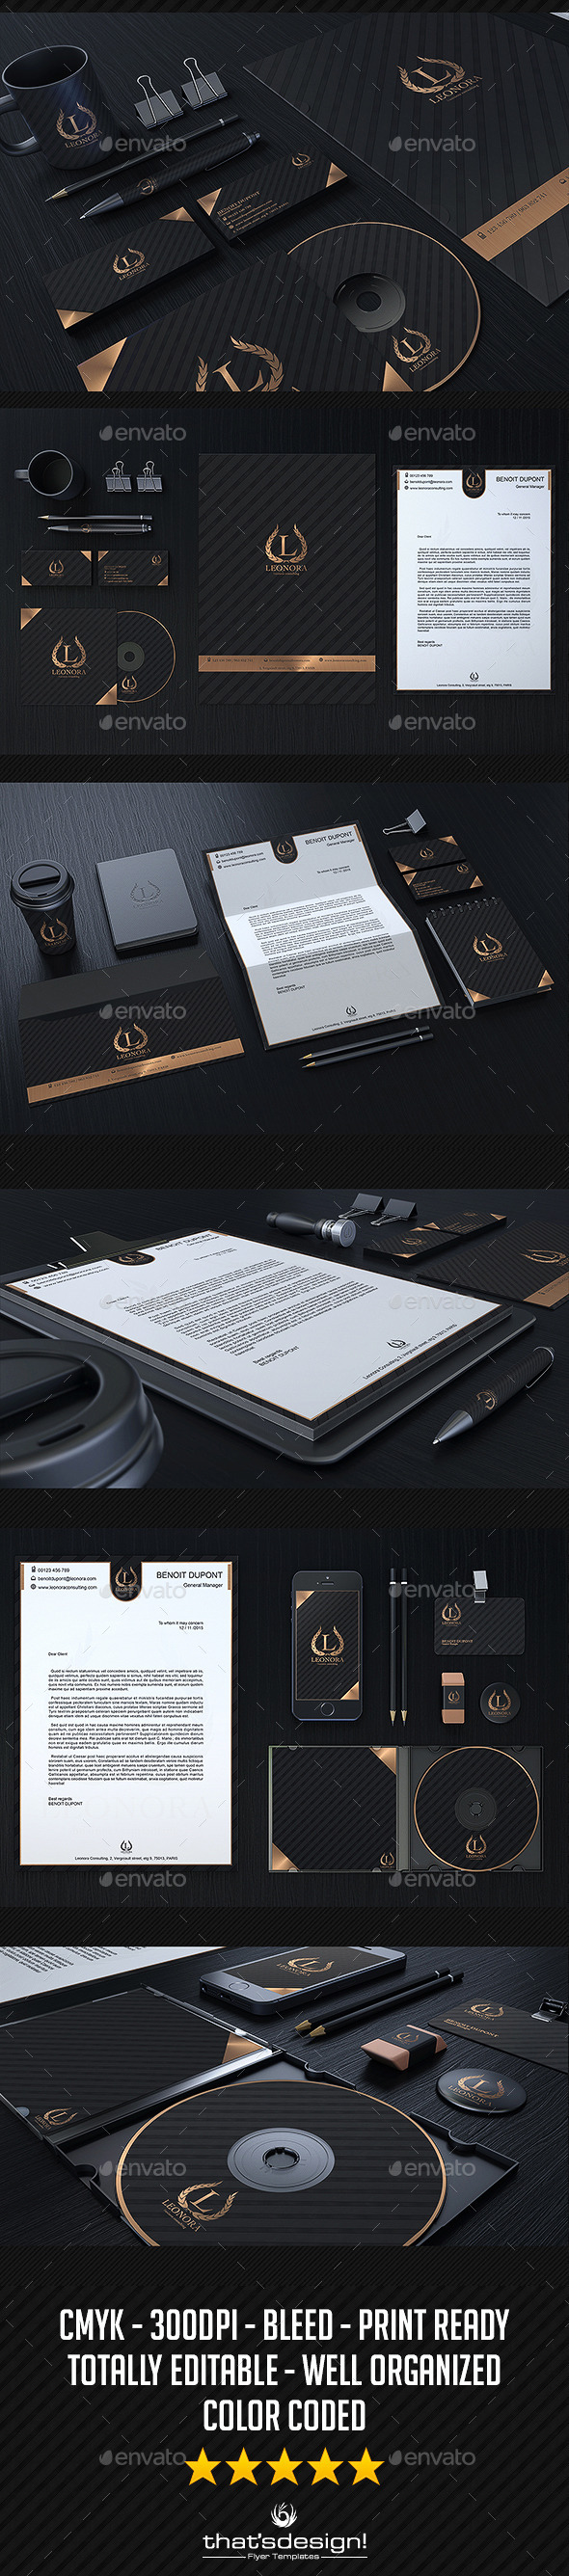 Black and Classy Corporate Identity - Stationery Print Templates